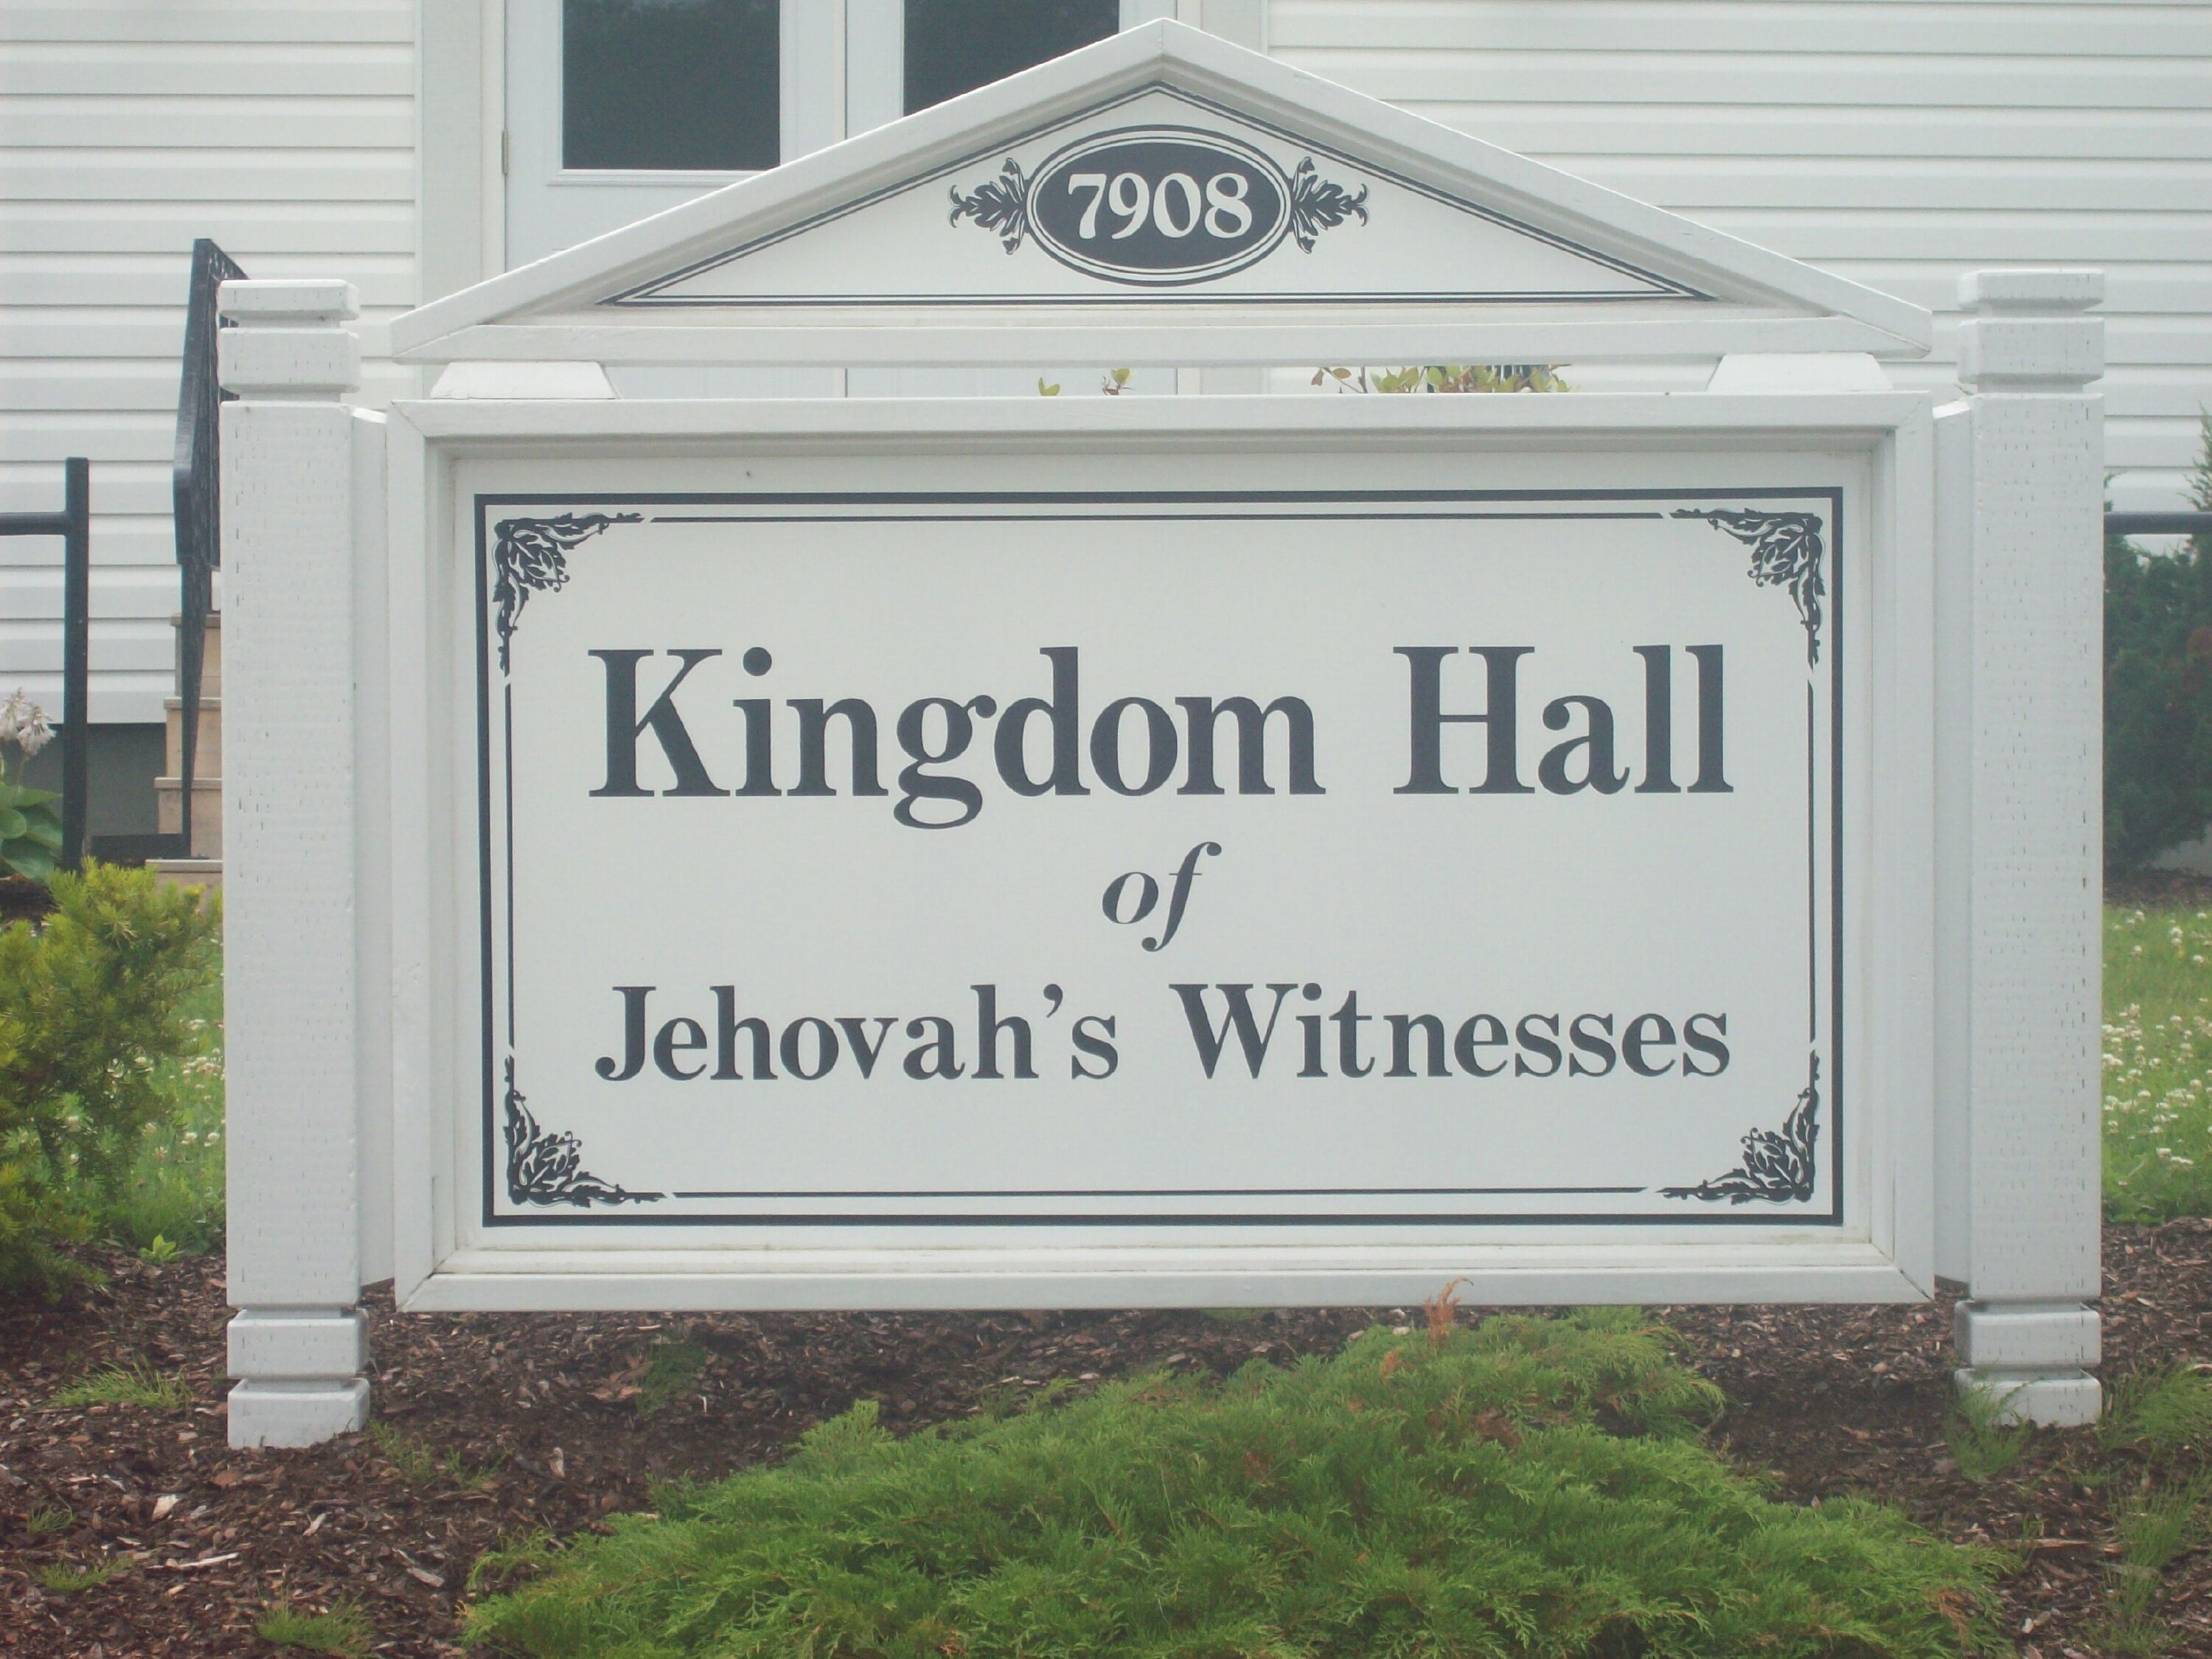 Jehovah witness cover up